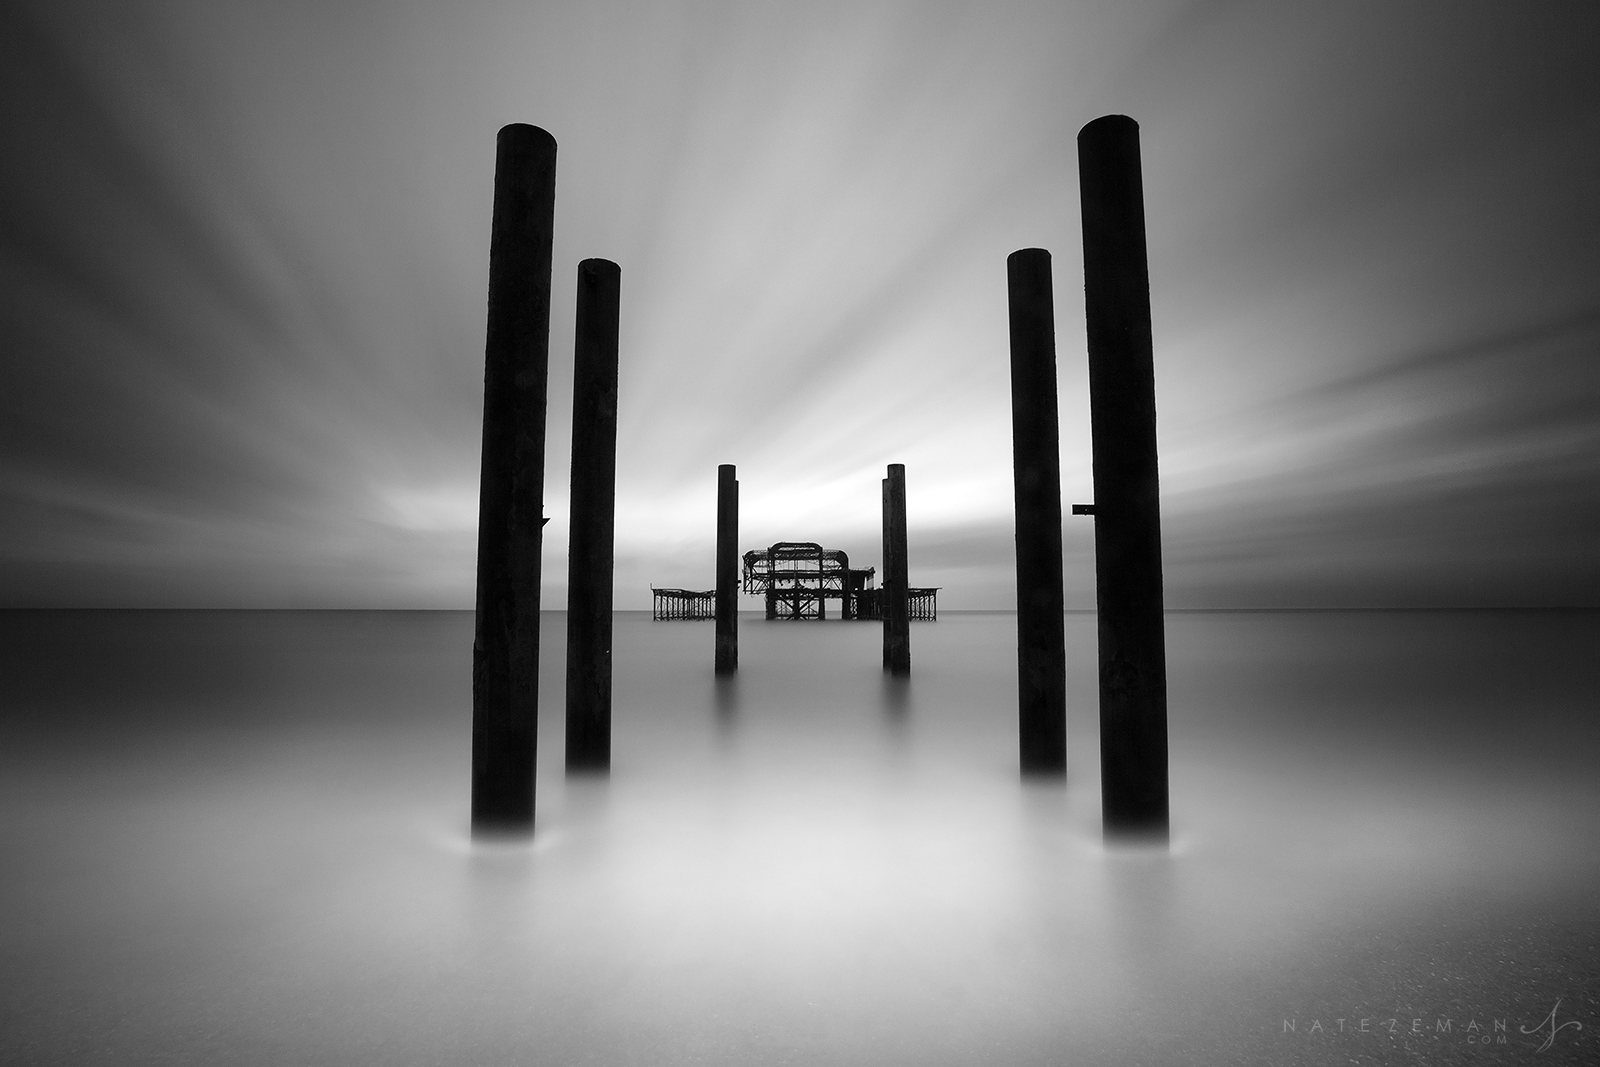 brighton, west pier, long exposure, fire, water, wind, ruin, dilapidated, pier, black and white, urban decay, abandoned, , photo